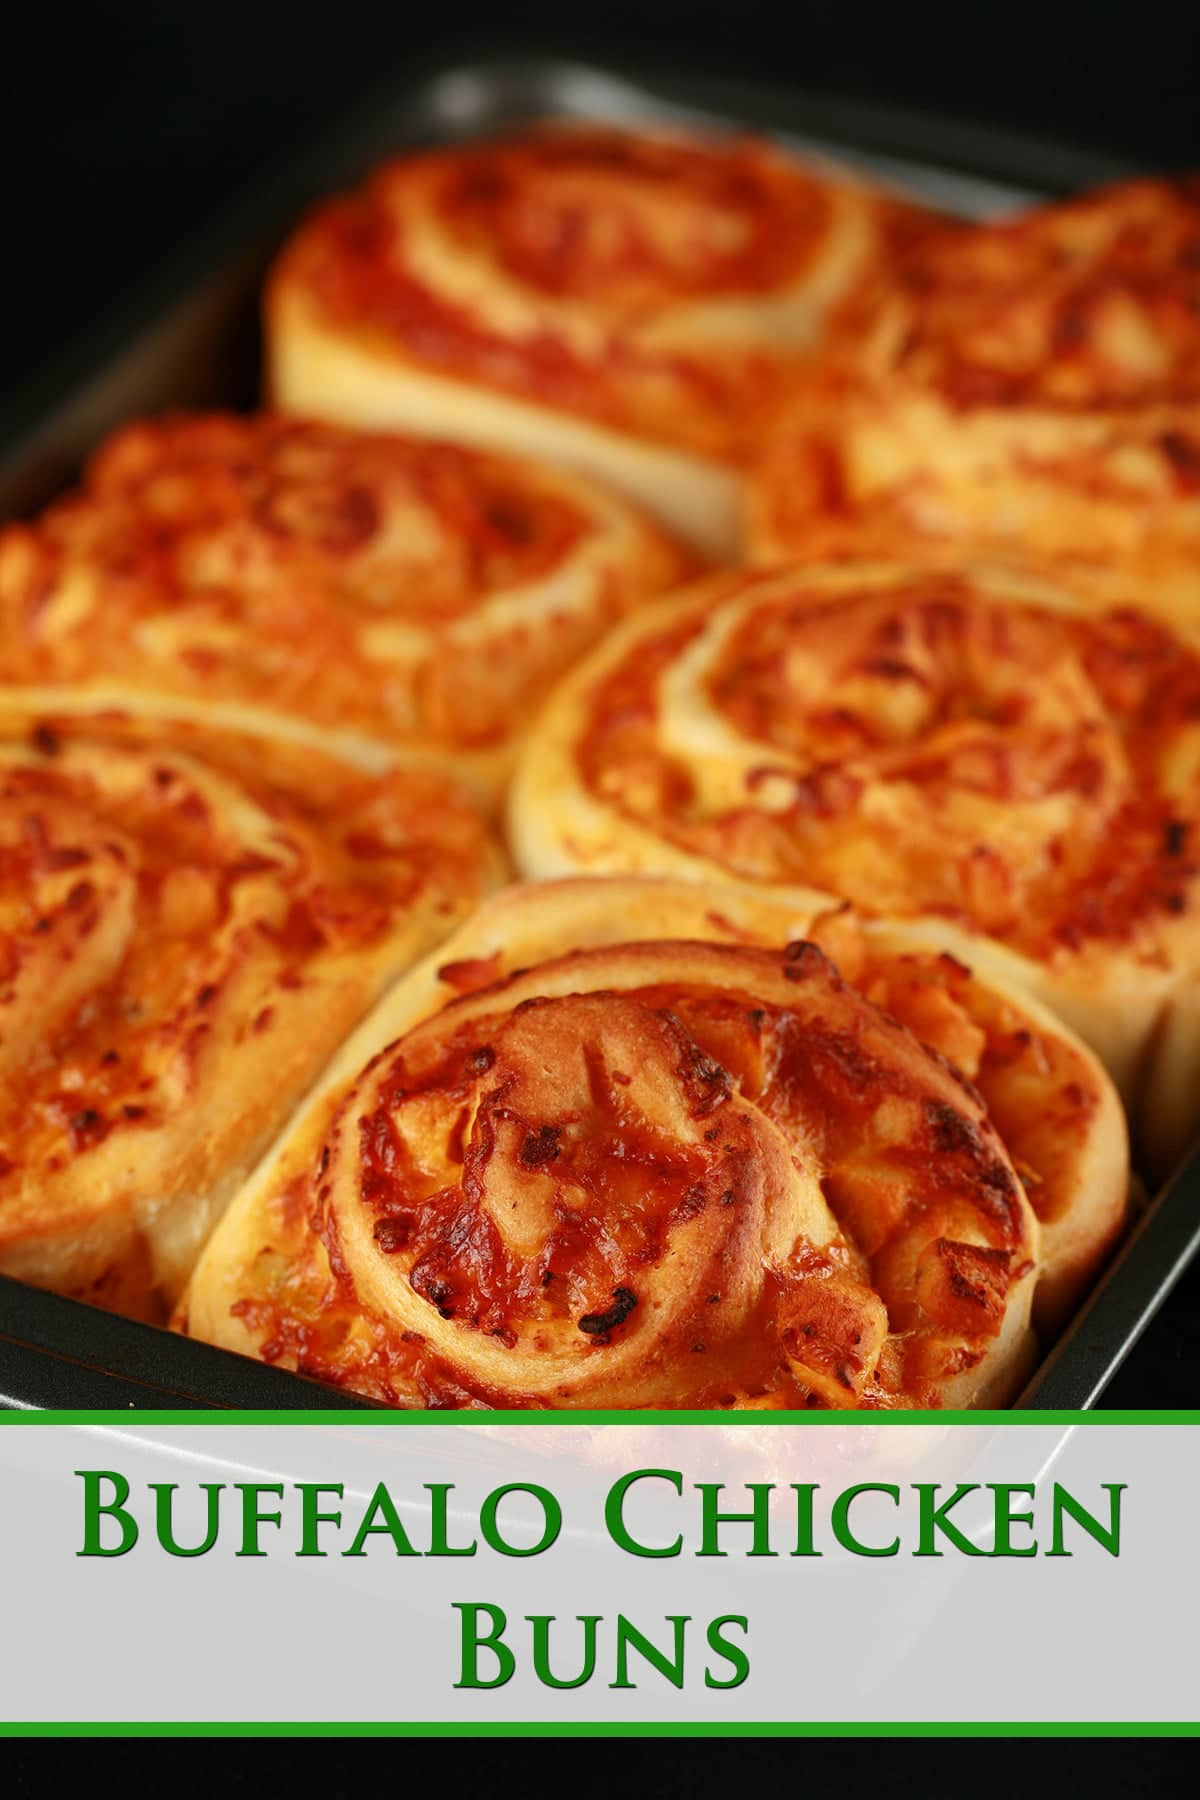 A pan of 6 baked buffalo chicken buns. They resemble cinnamon buns, but with a buffalo chicken and cheese filling.